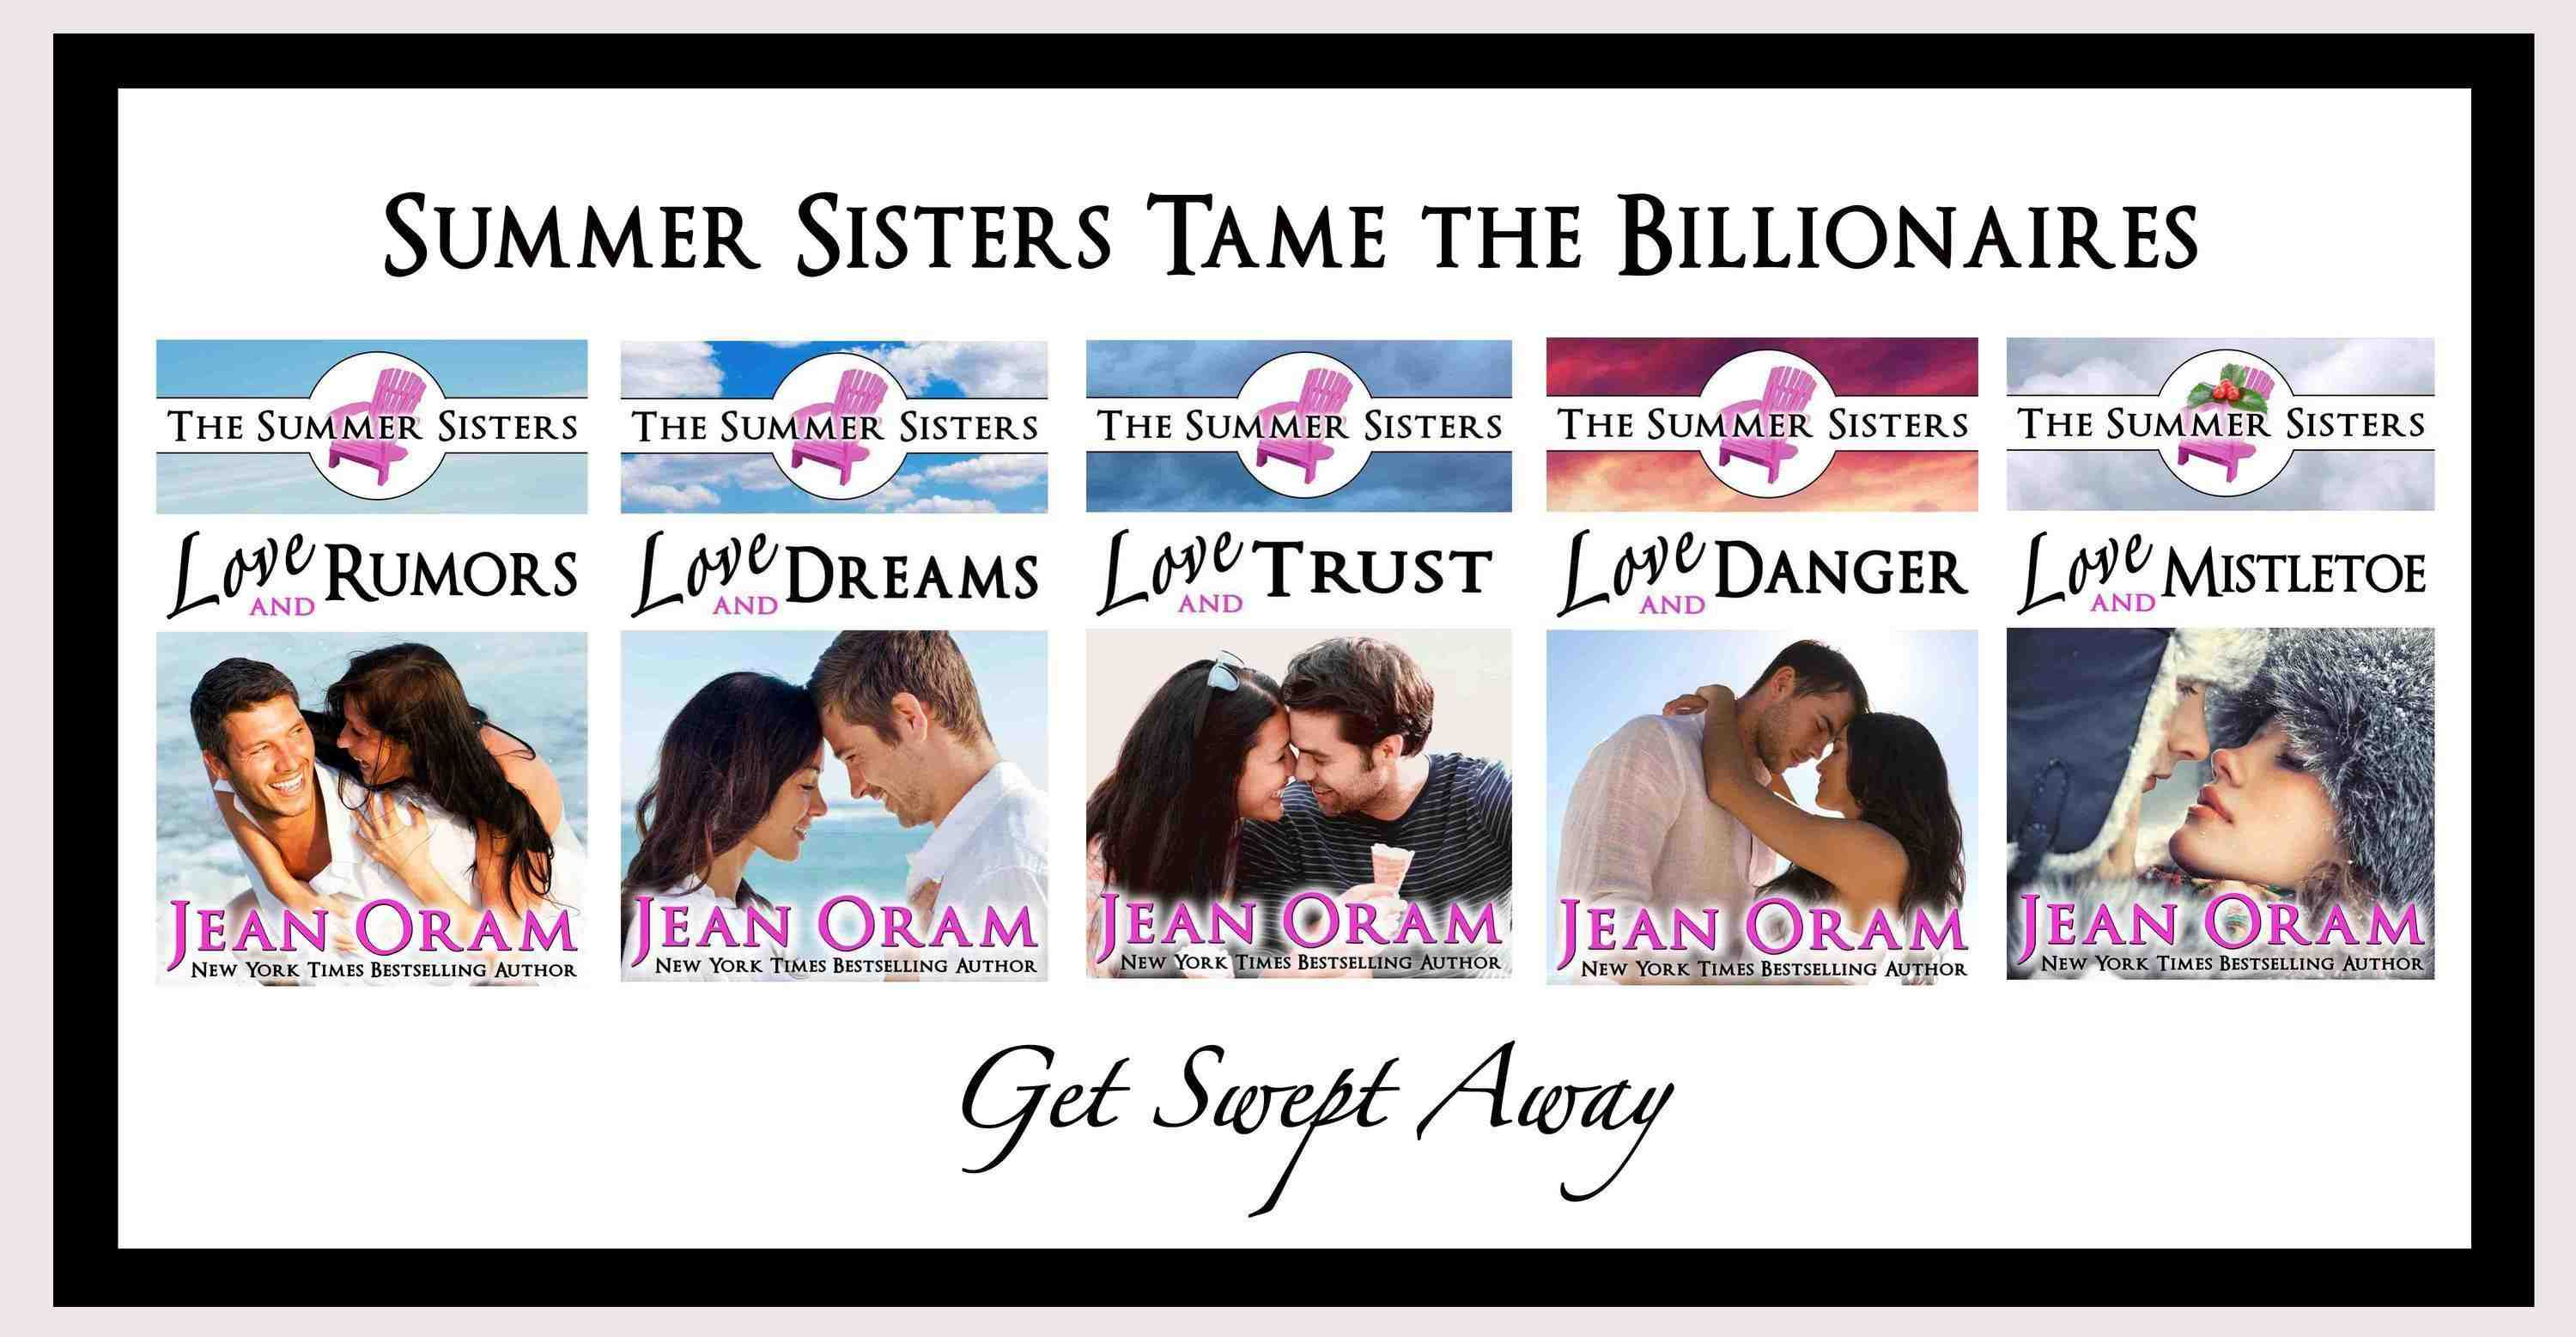 The Summer Sisters Tame the Billionaires series by Jean Oram.